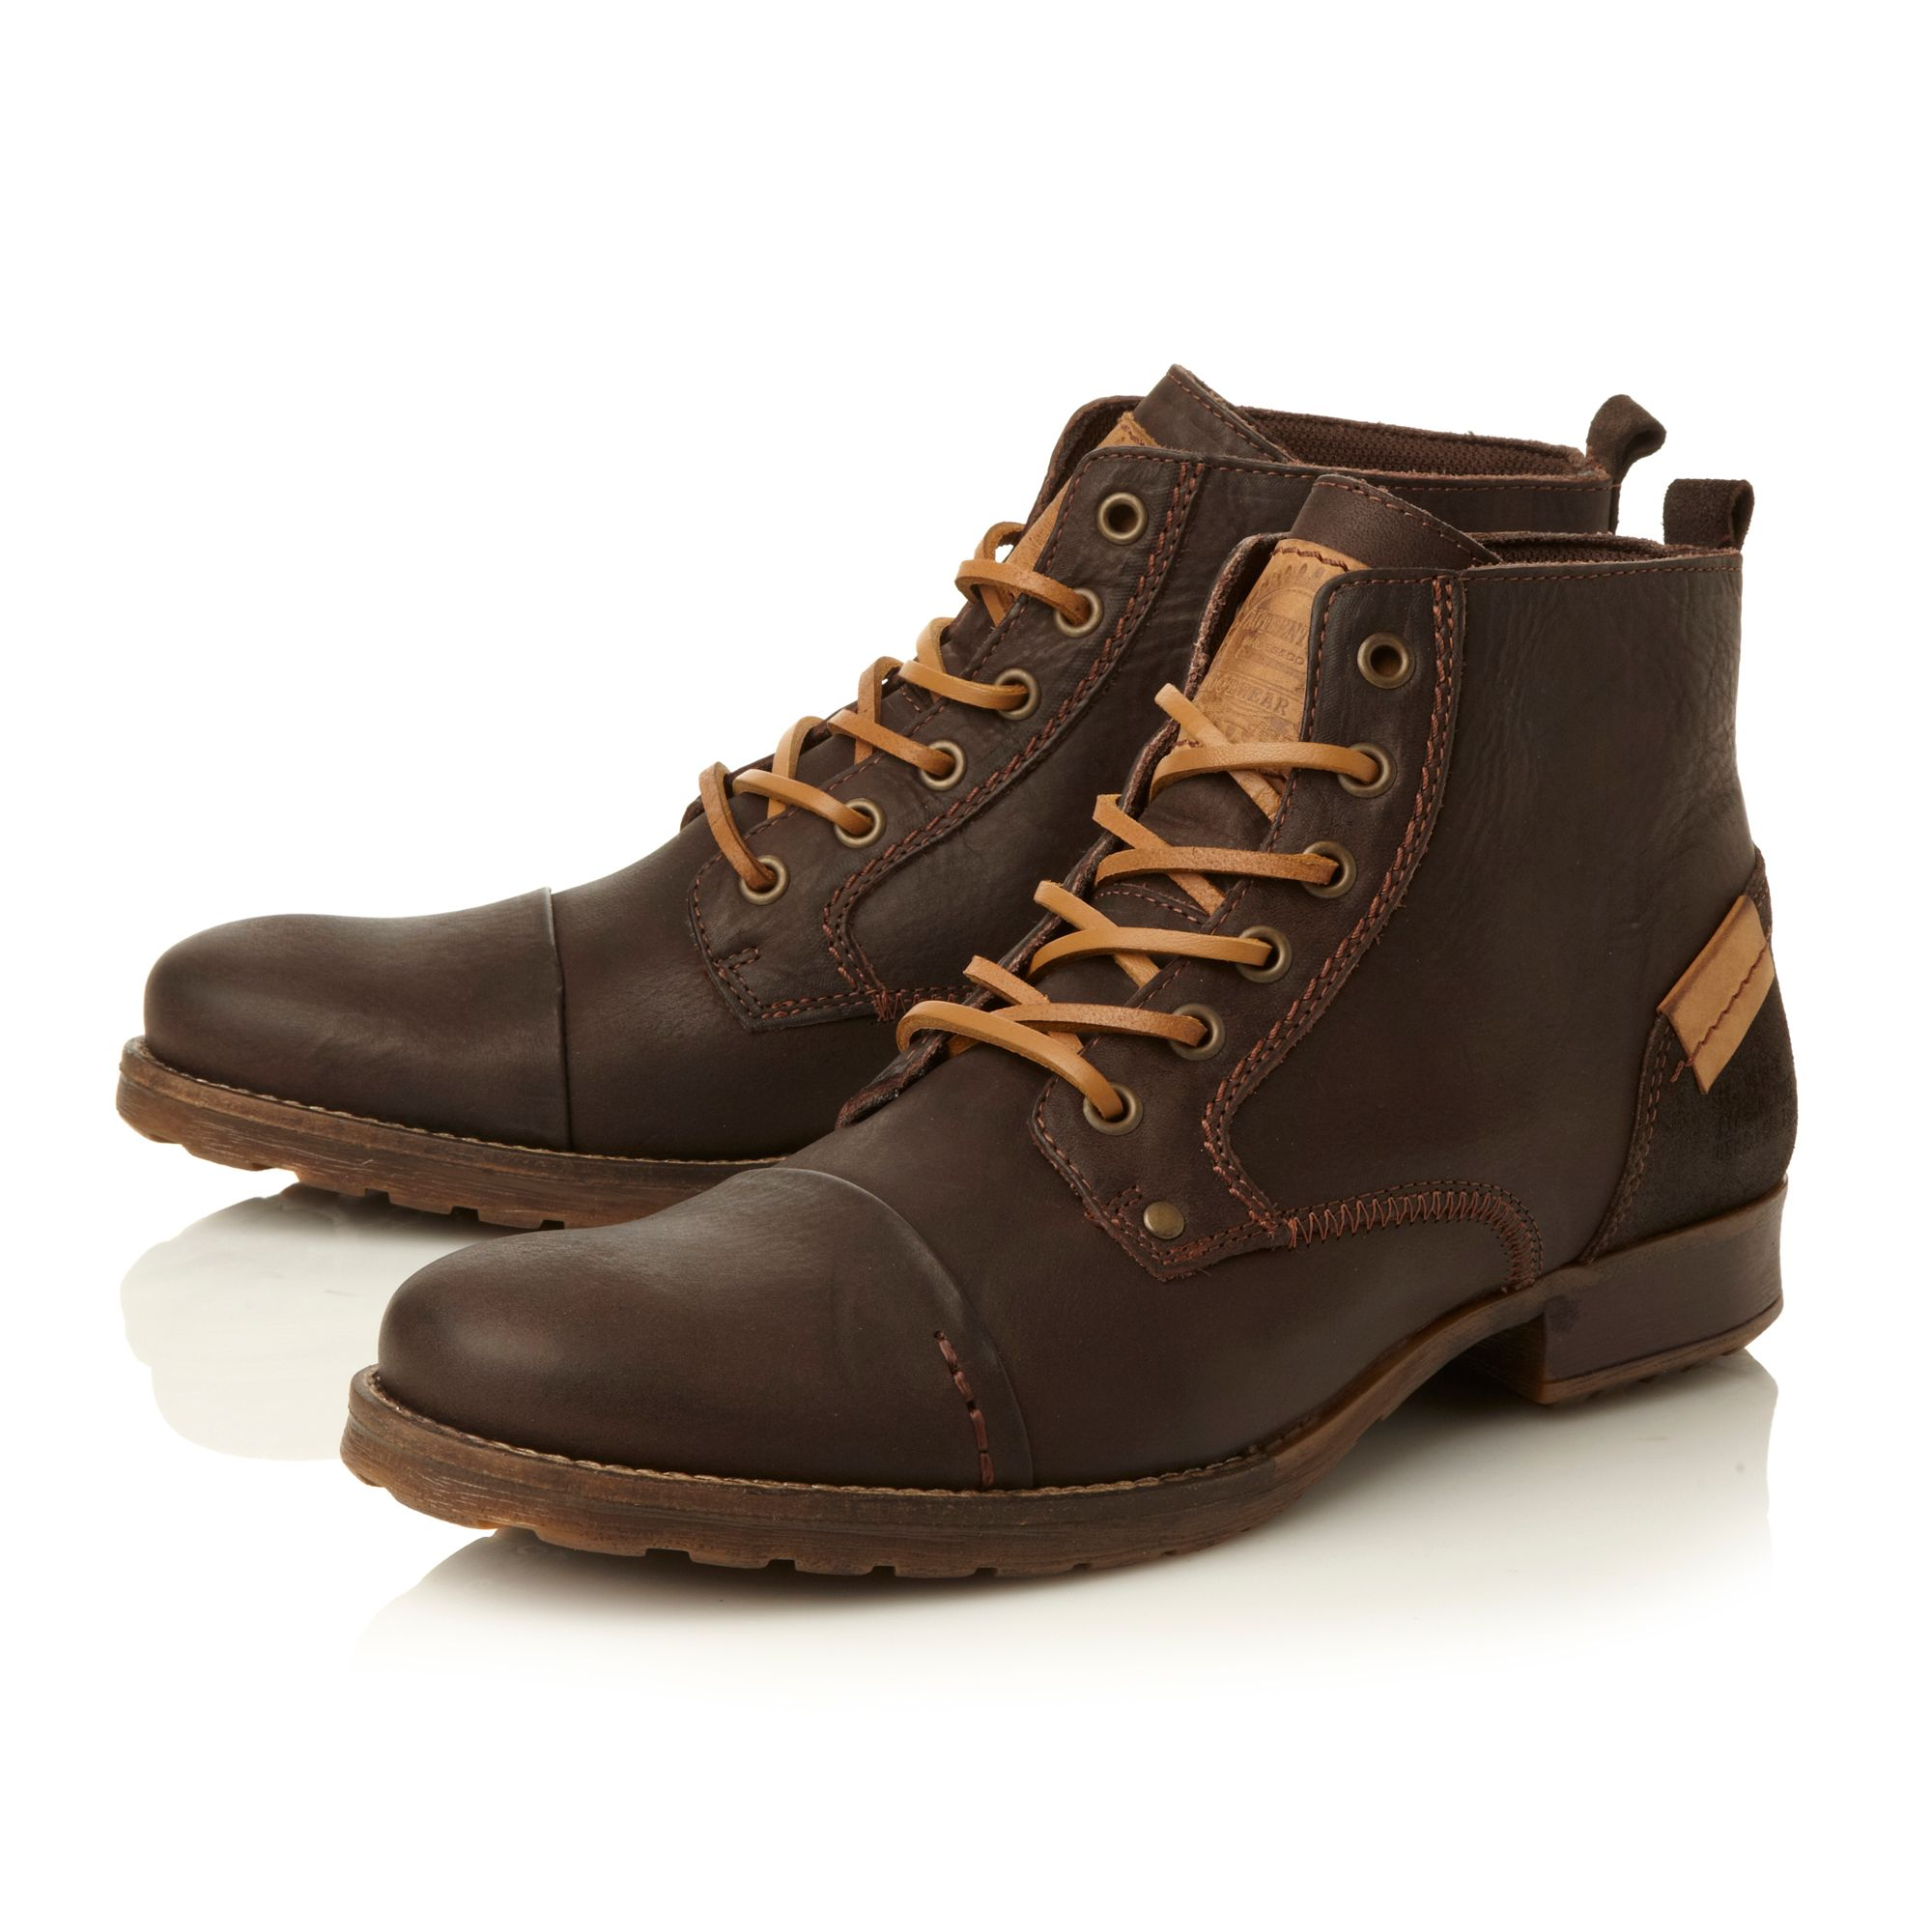 Coach folded seam toe cap boots